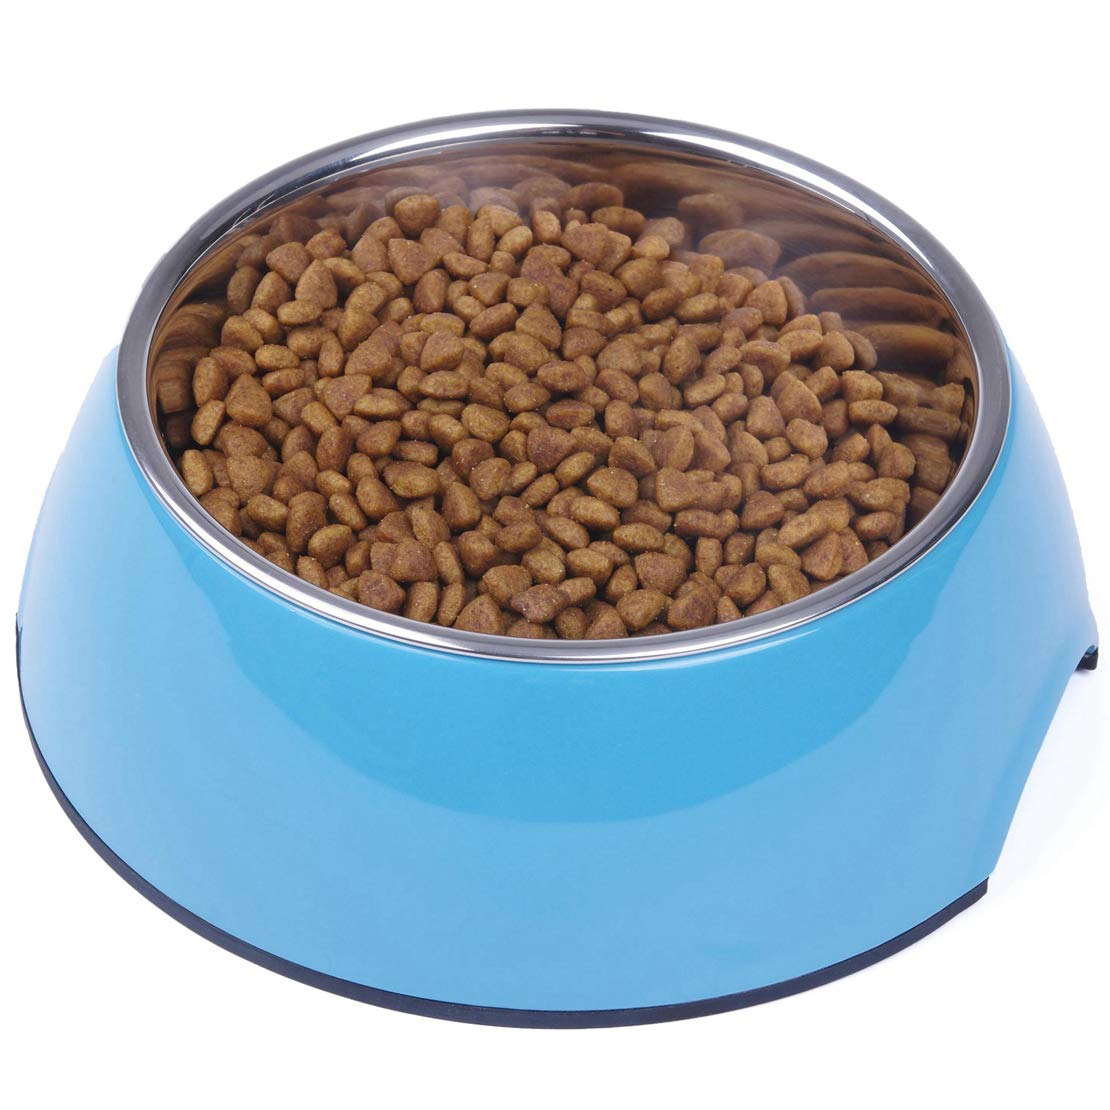 bluee 3 Cup bluee 3 Cup Super Design Dog Cat Bowls Melamine Stand Stainless Steel Bowls for Small Medium Large Dogs and Cats